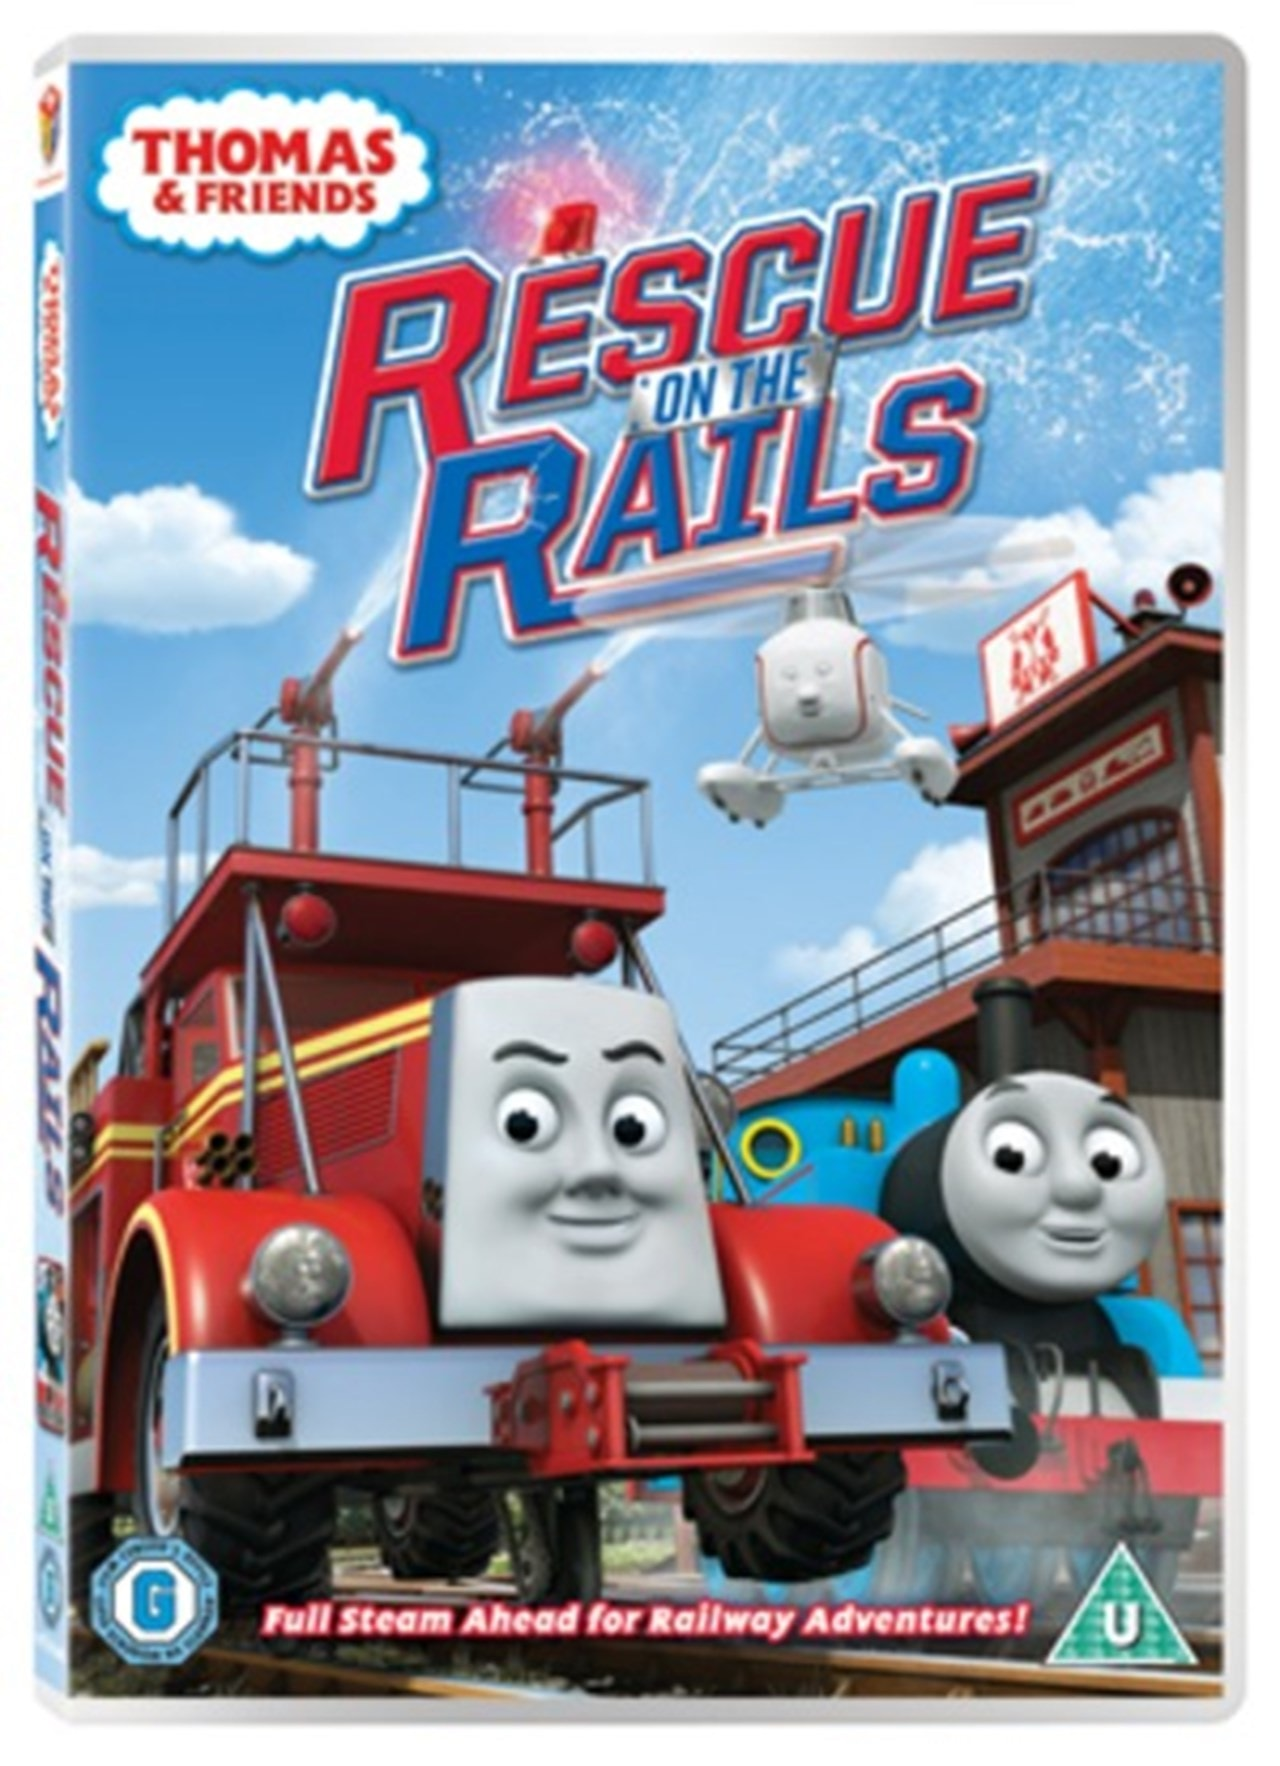 Thomas & Friends: Rescue On the Rails - 1